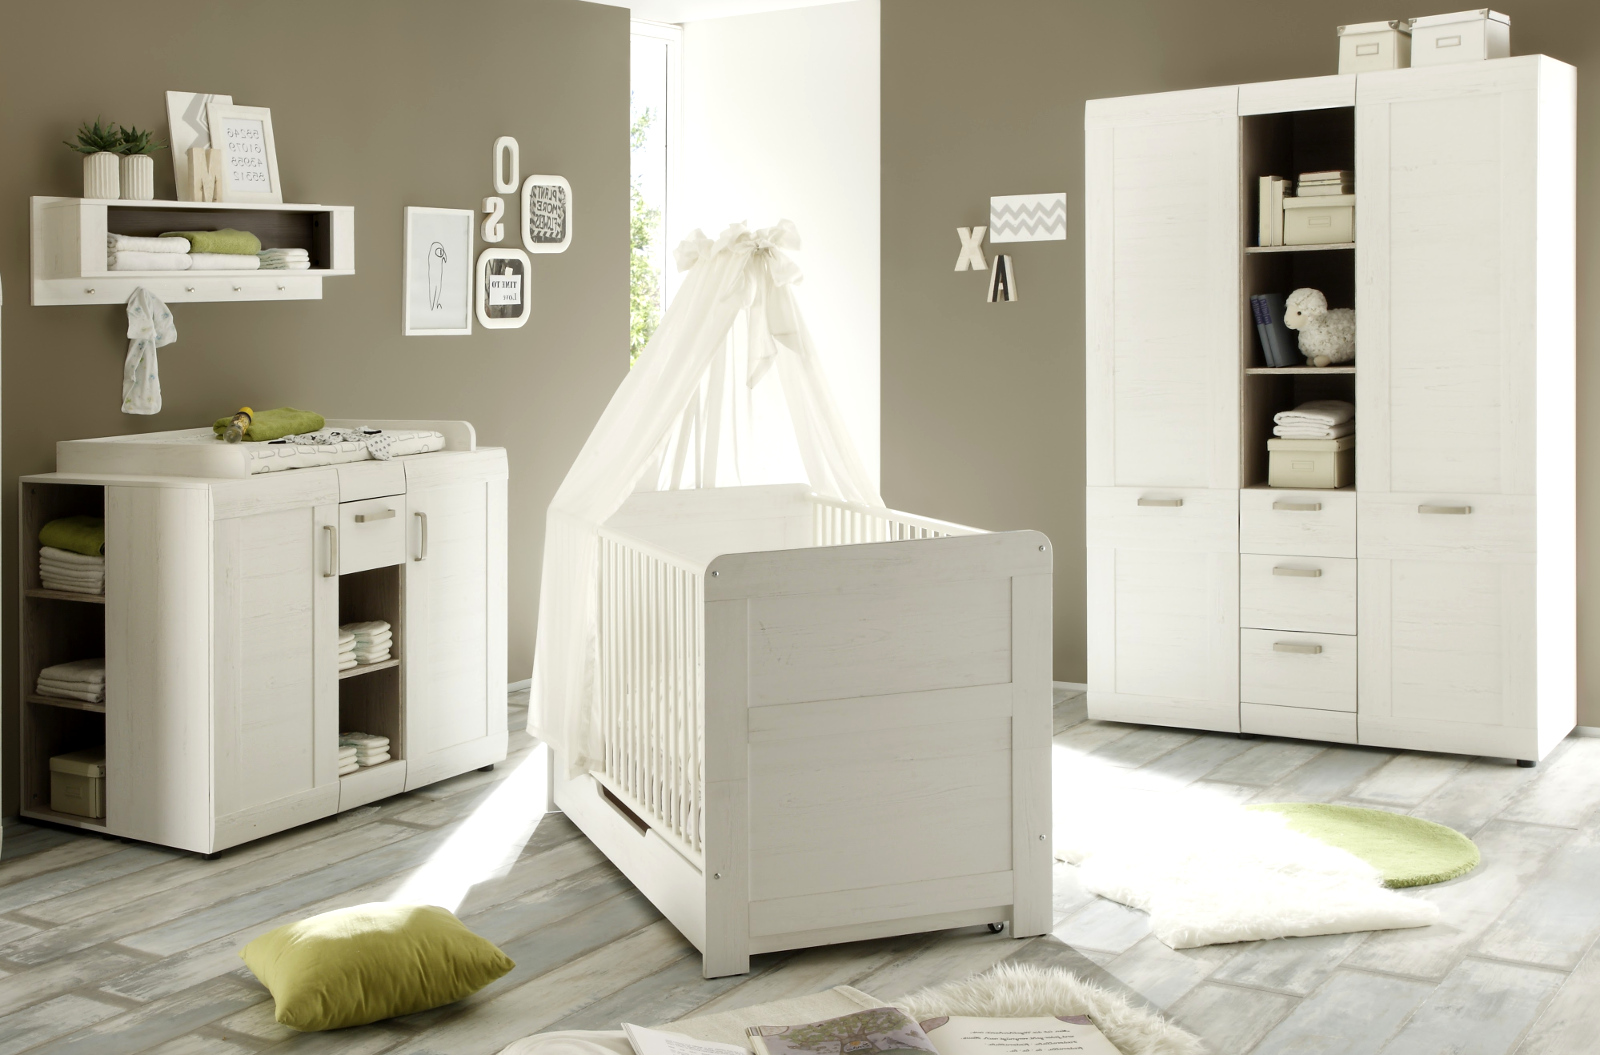 babyzimmer kinderzimmer komplett set wei neu 6 teilig. Black Bedroom Furniture Sets. Home Design Ideas